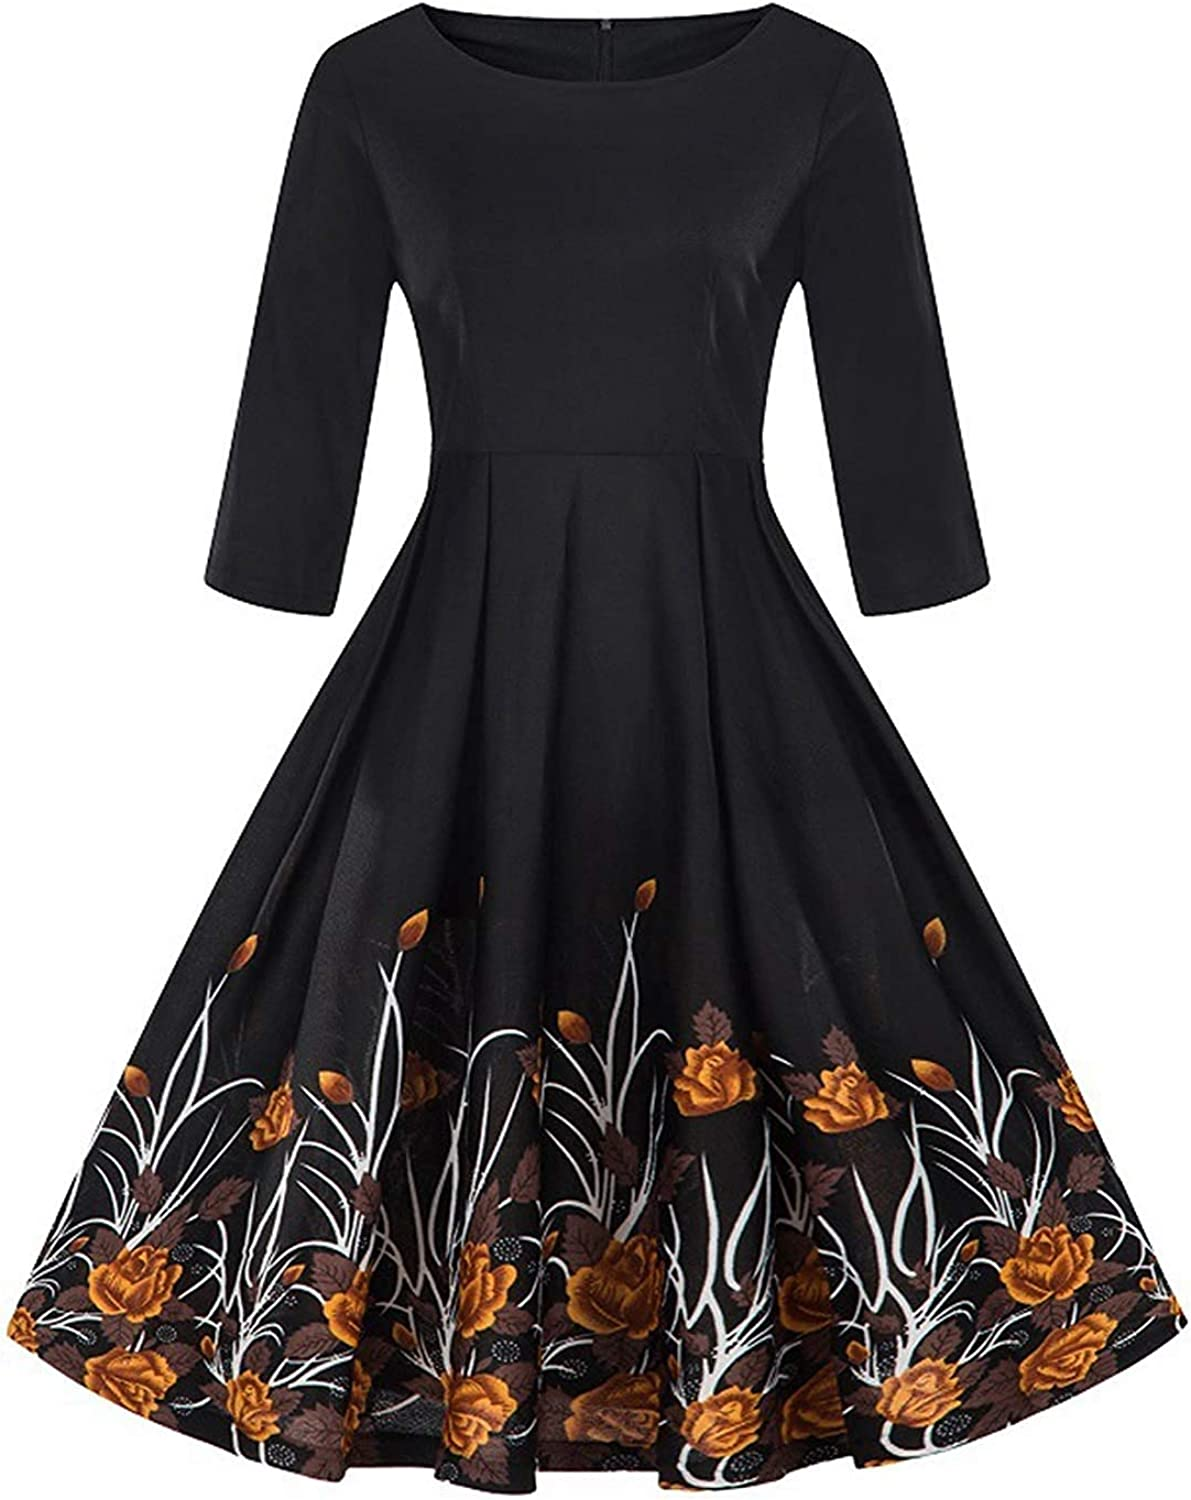 Flextiicinax Women's 1950s Vintage Floral Half Sleeve A Line Swing Cocktail Party Tea Dress